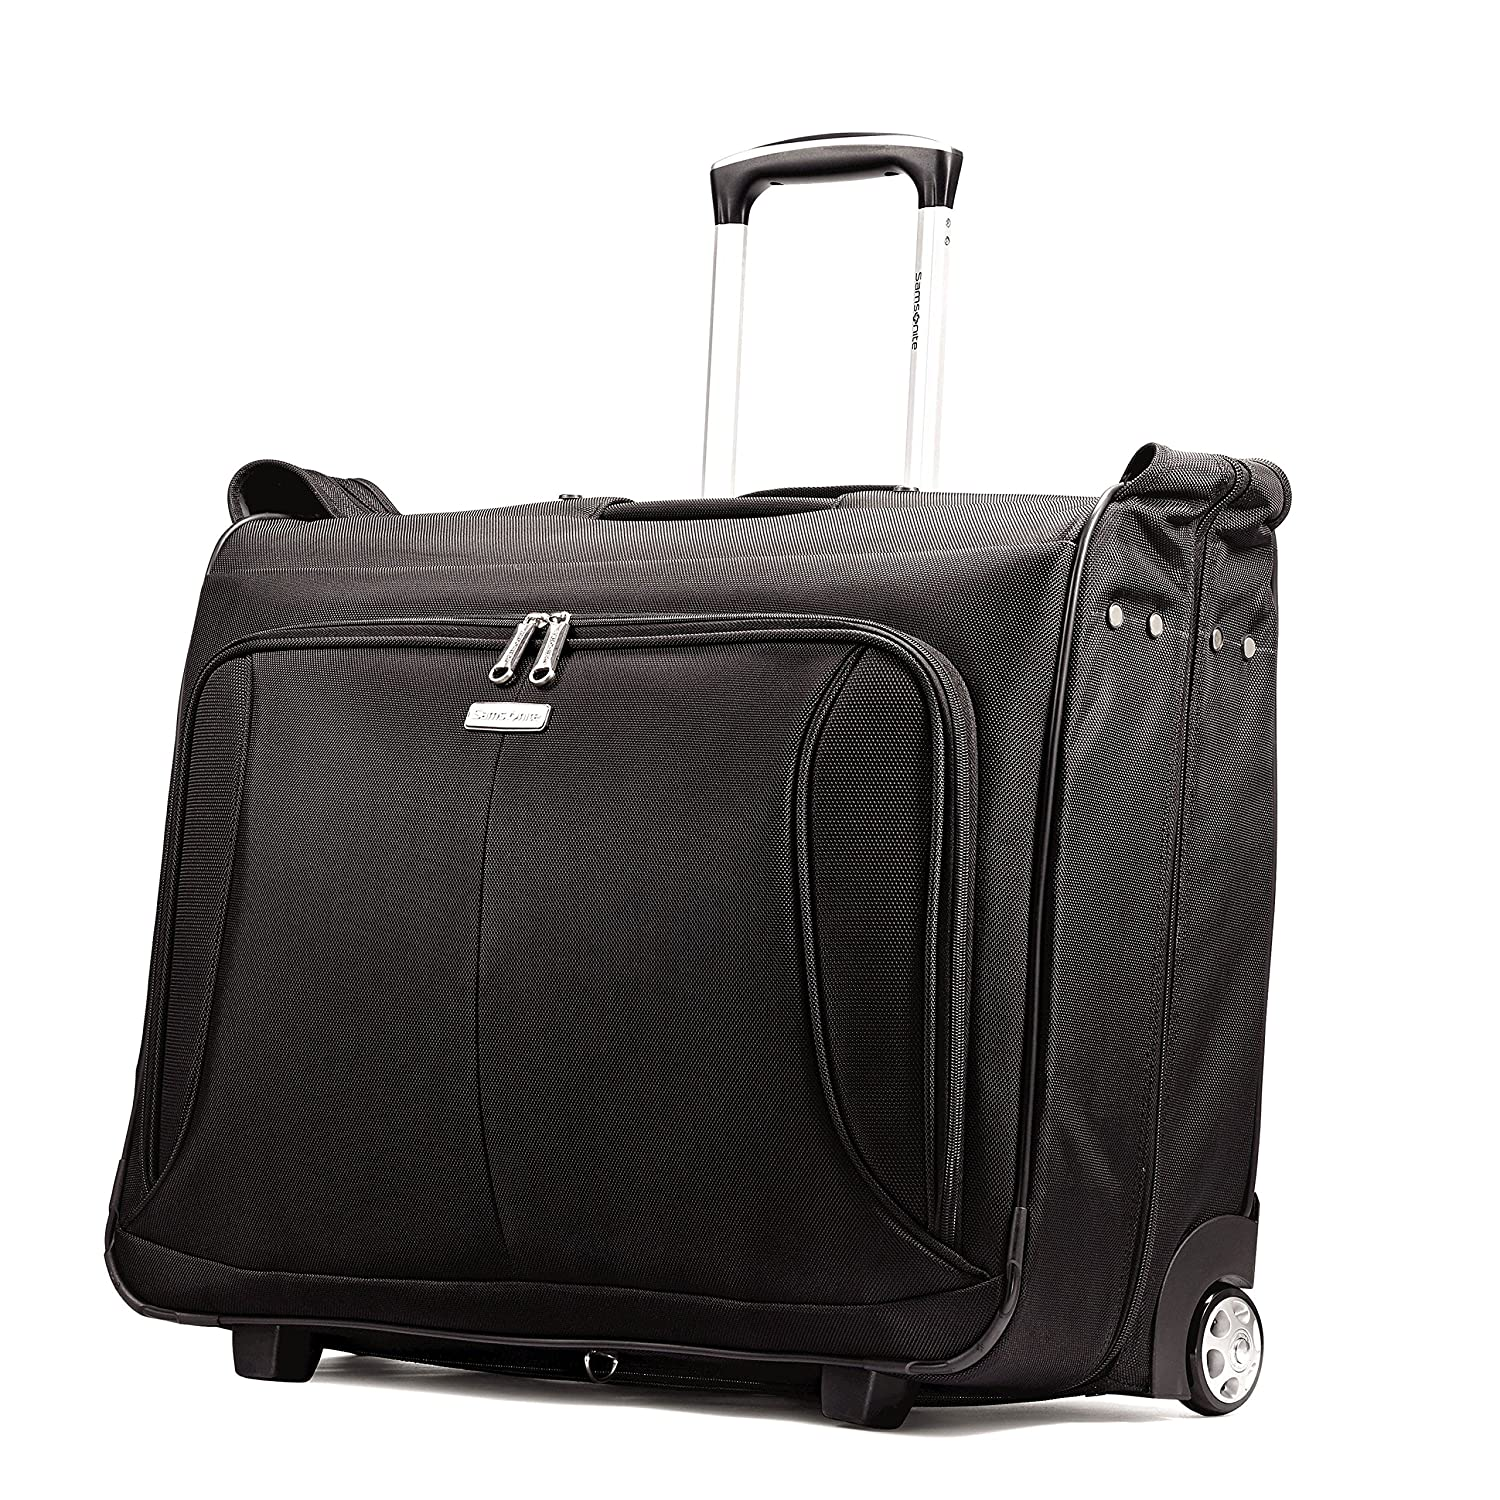 Samsonite Aspire Xlite Wheeled Garment Bag, Black Samsonite Corporation 74573-1041